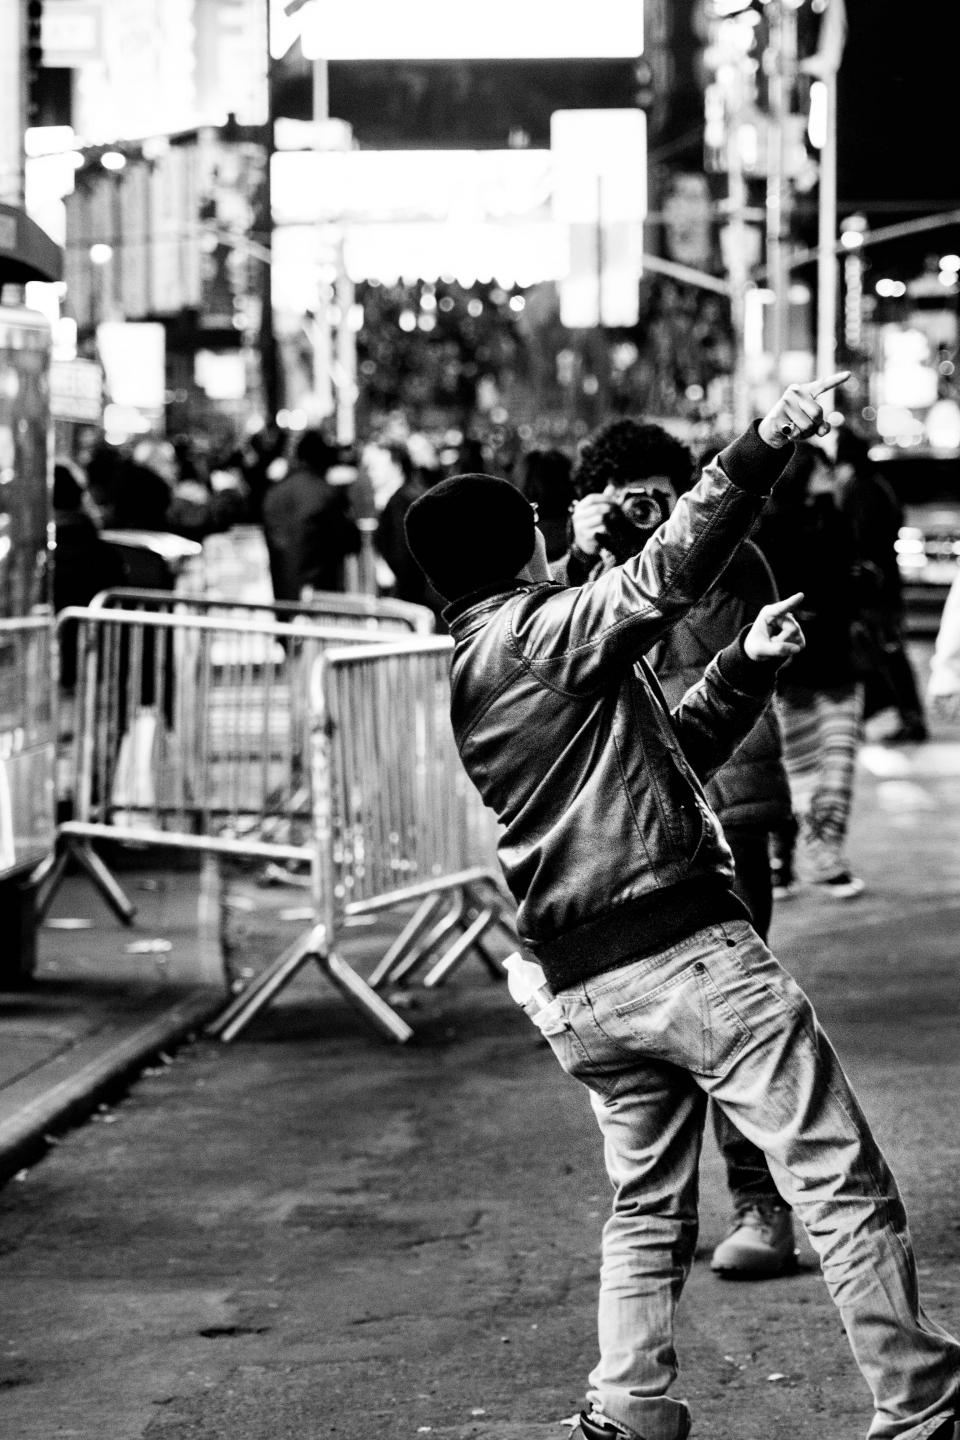 NYC, New York City, streets, people, crowd, busy, photographer, photography, black and white